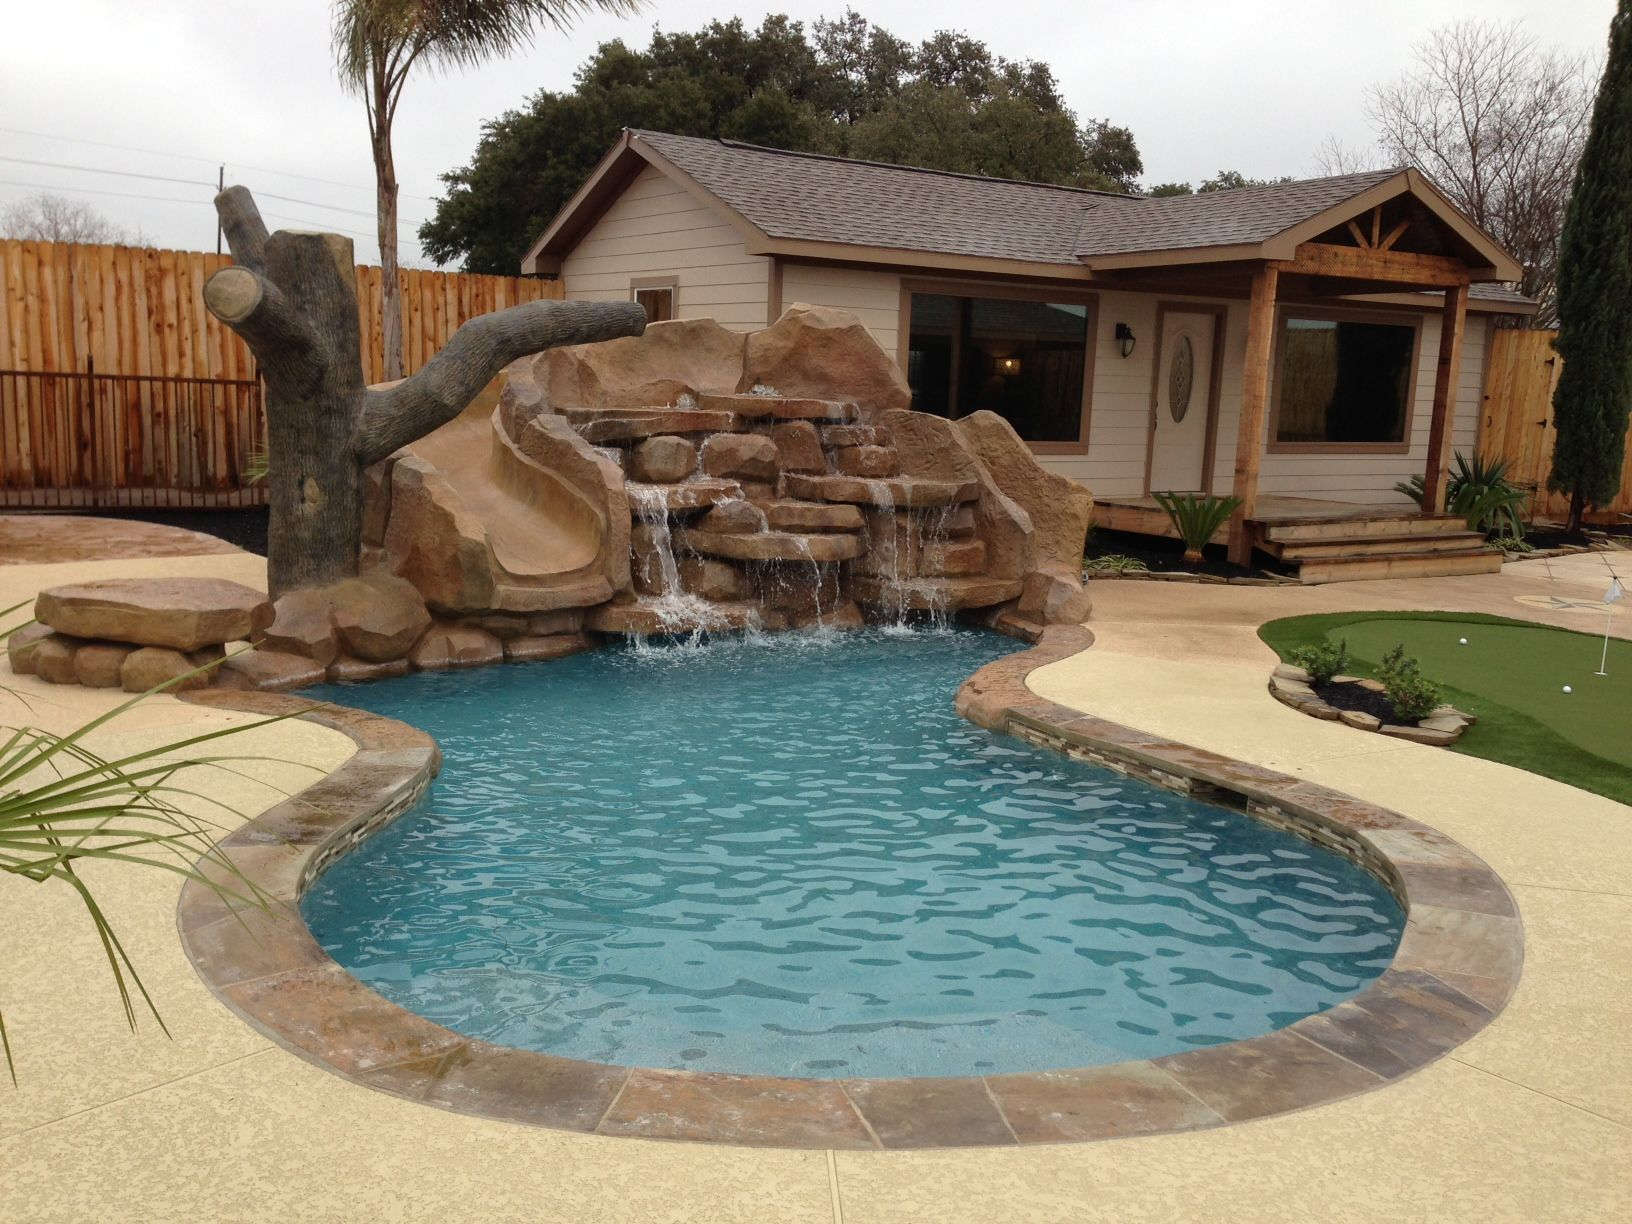 Pool Google Search Small Backyard Pools Small Pool Design Swimming Pools Backyard